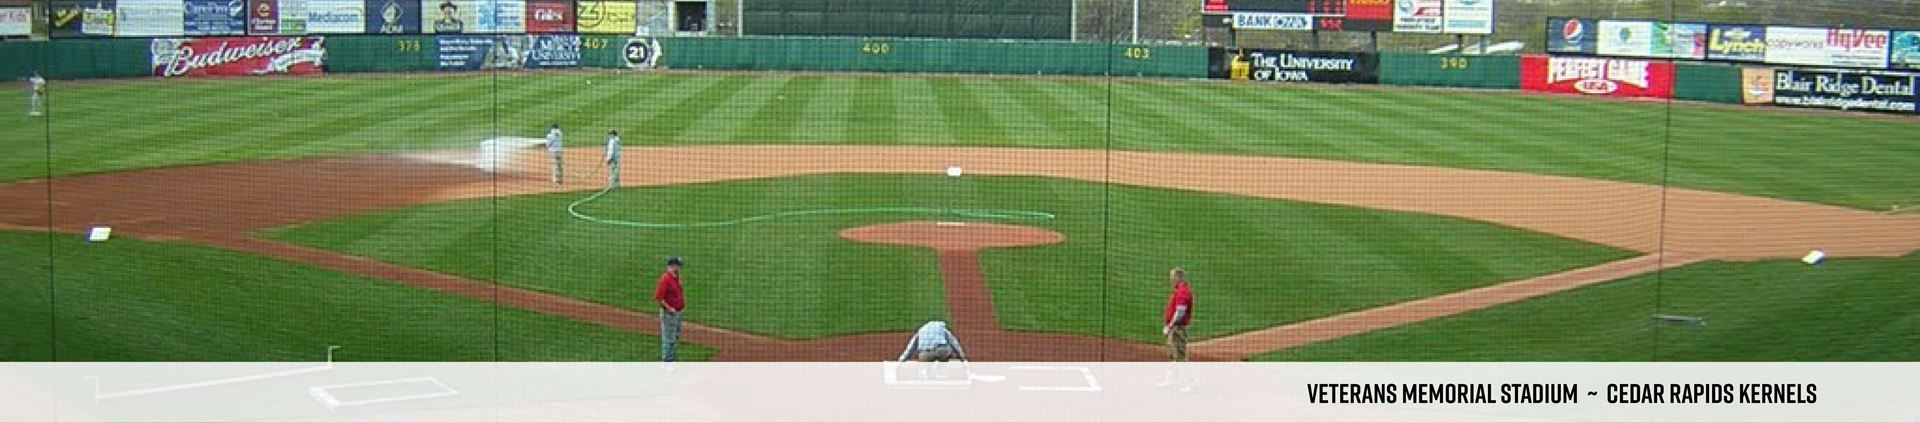 Iowa stma baseball field of the year golden cleat award malvernweather Images